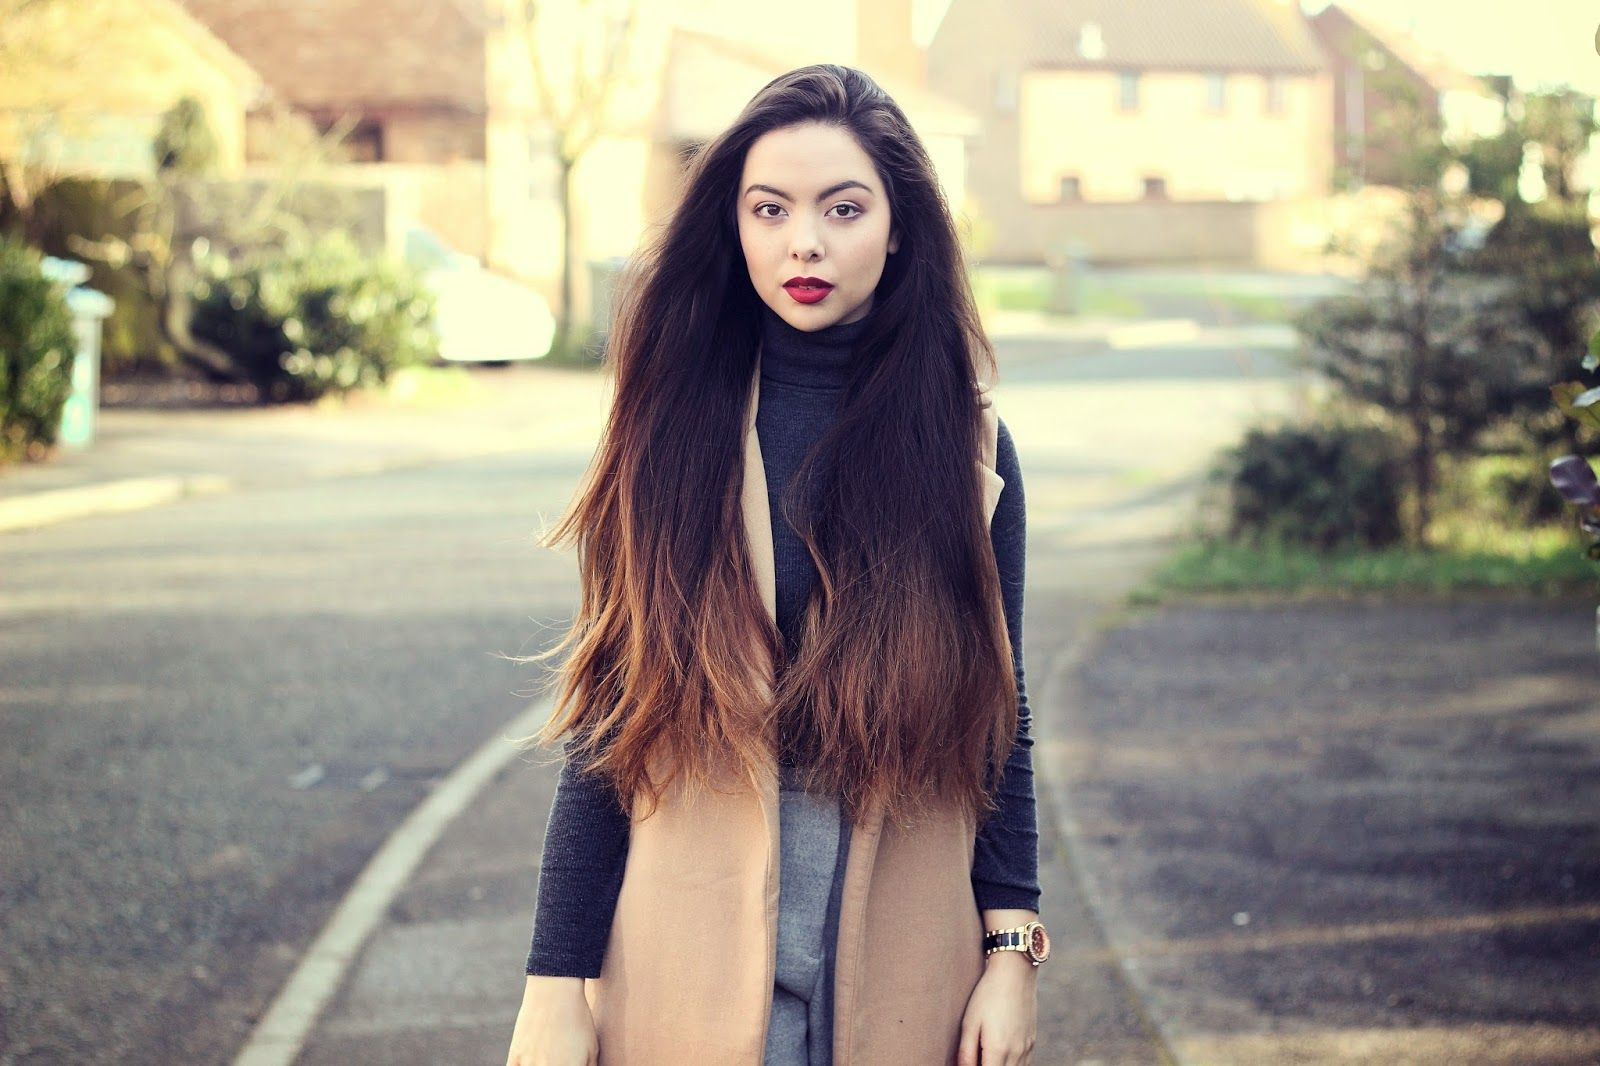 Misguided Jacket, New Look Top, Asos Trousers and River Island Watch on artstylelove.com #fbloggers #longhair #hair #brunette #ombre #ootd #outfit #inspo #fashion